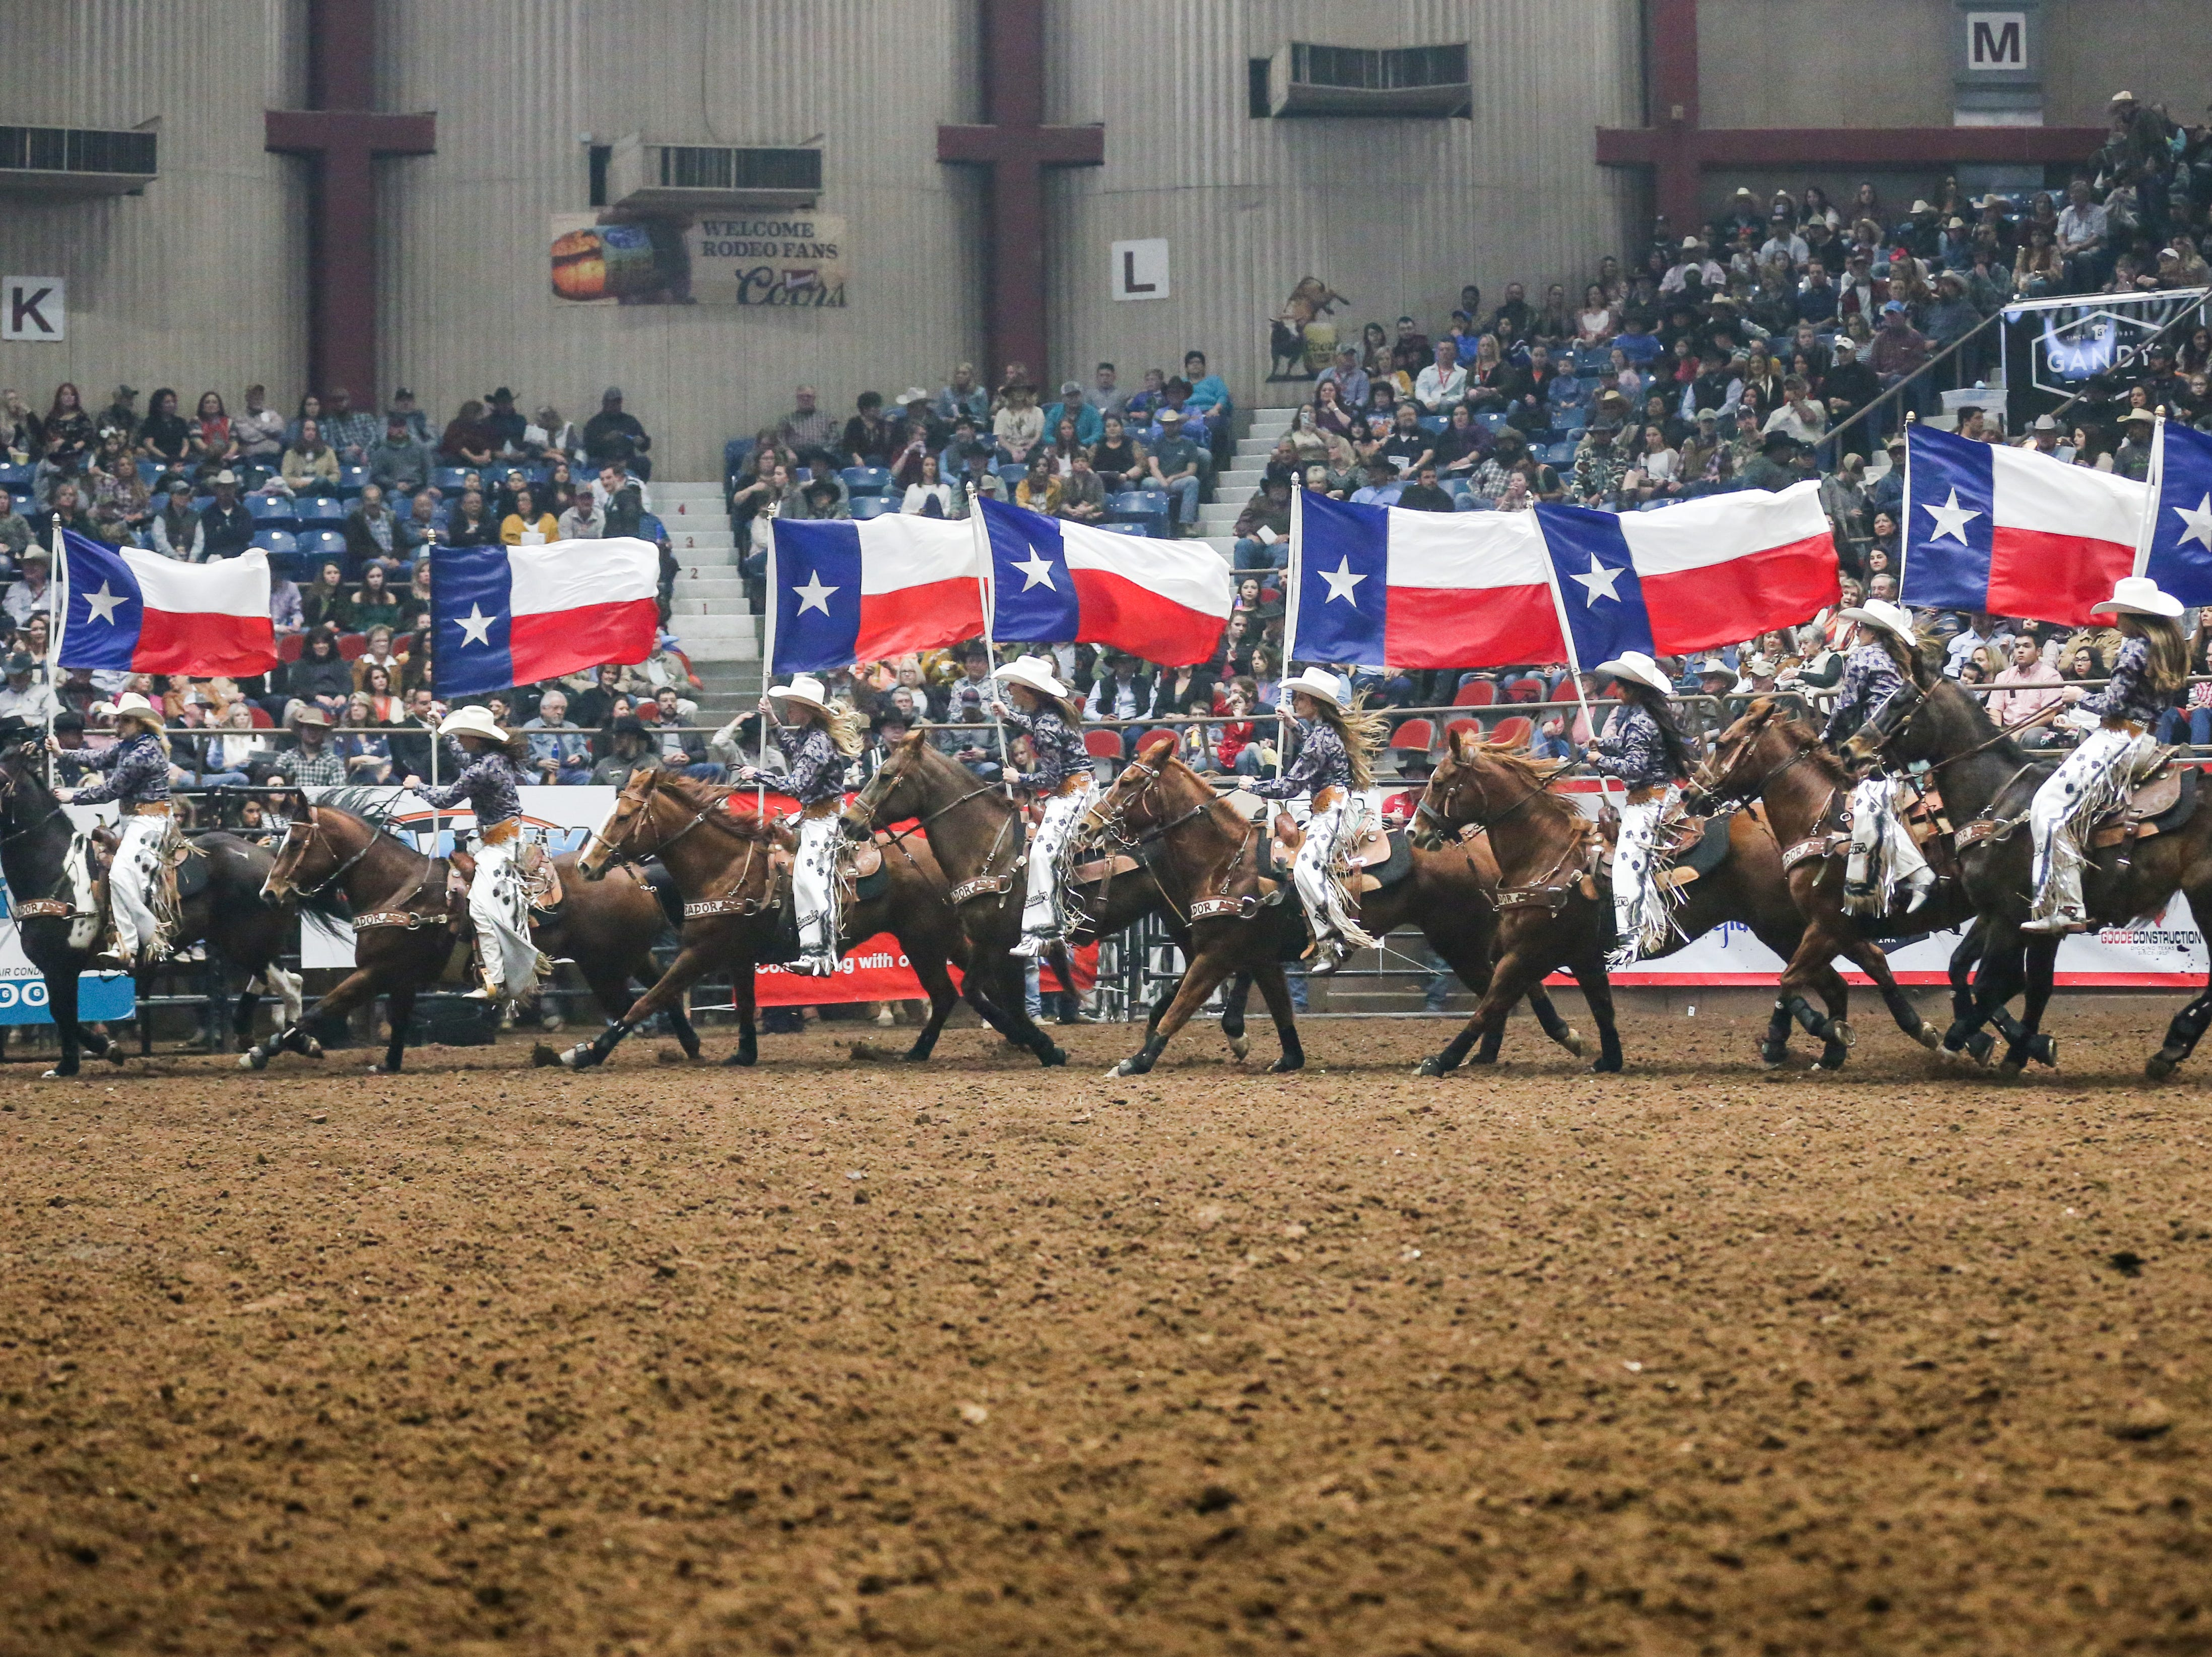 The San Angelo Ambassadors ride in the arena during the 3rd performance of the San Angelo Stock Show & Rodeo Saturday, Feb. 2, 2019, at Foster Communications Coliseum.